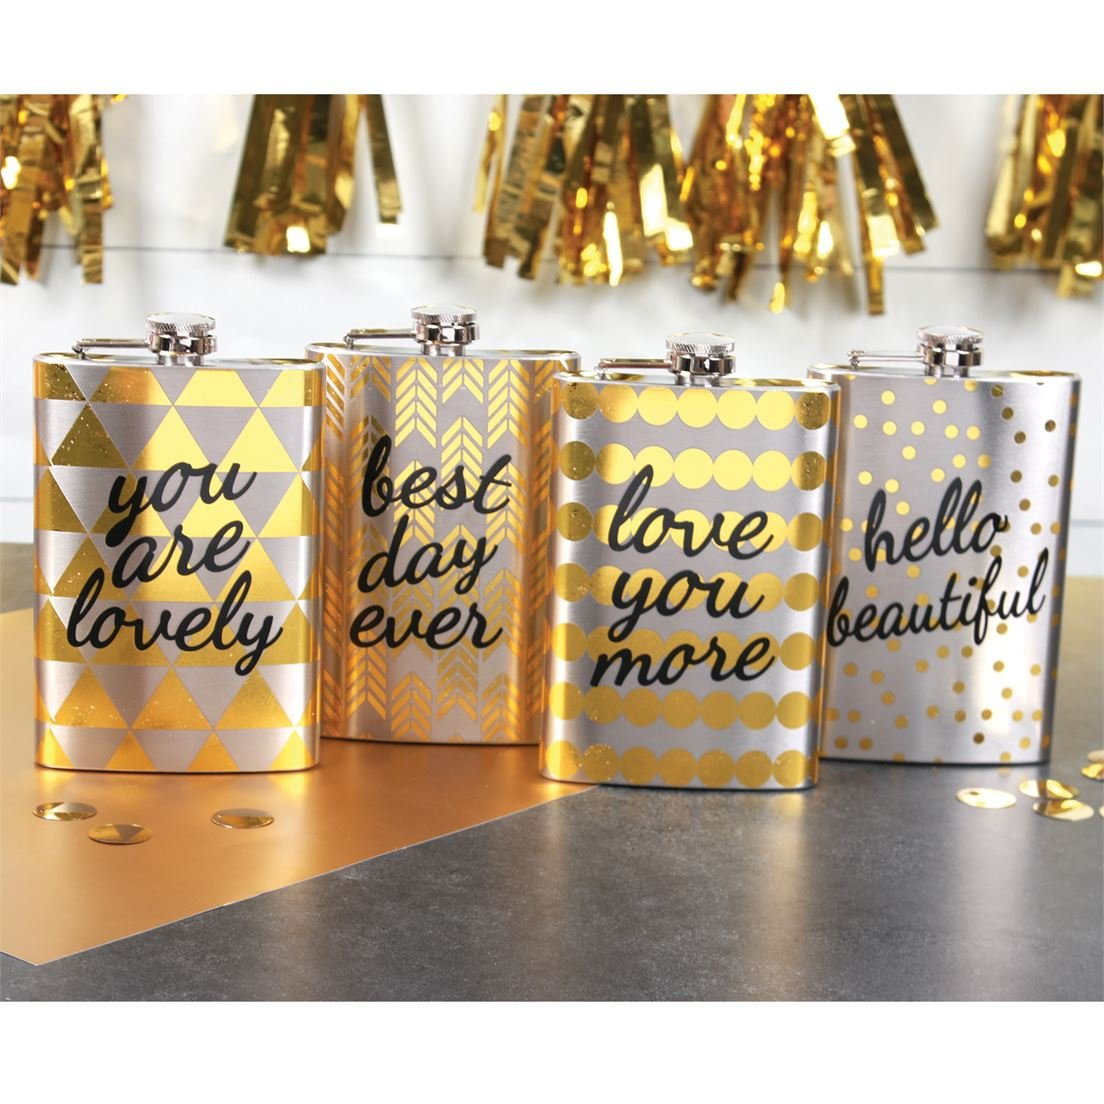 Best Day Ever Silver /& Gold Foil Fun Sayings Stainless Steel 8oz Flask in a Gift Box Great for Weddings//Parties